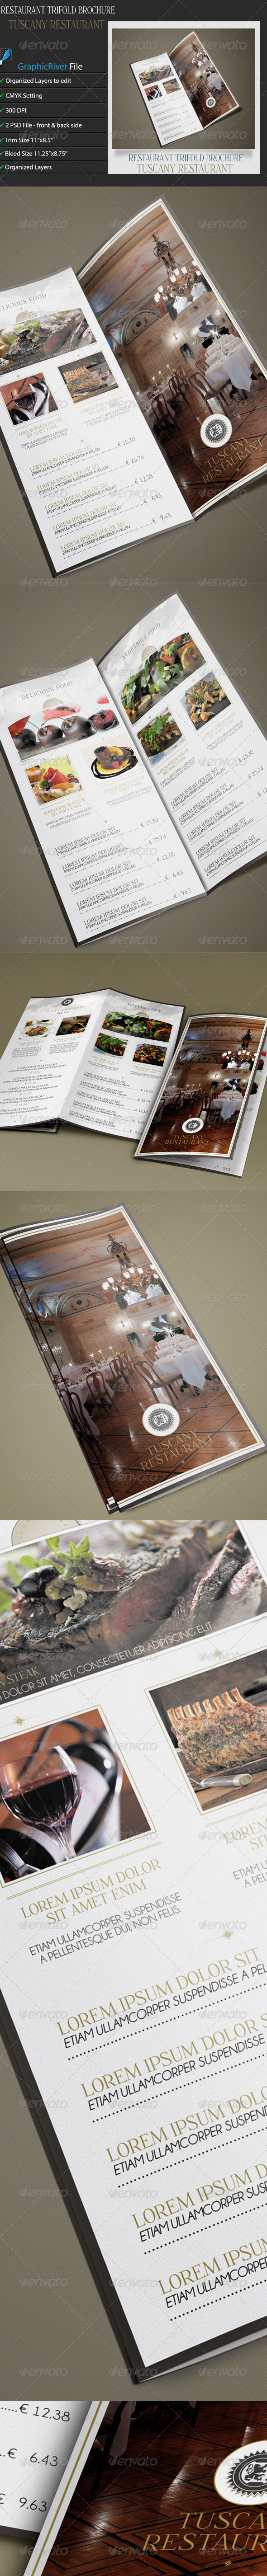 GraphicRiver Restaurant TriFold Brochure Tuscany 6980123